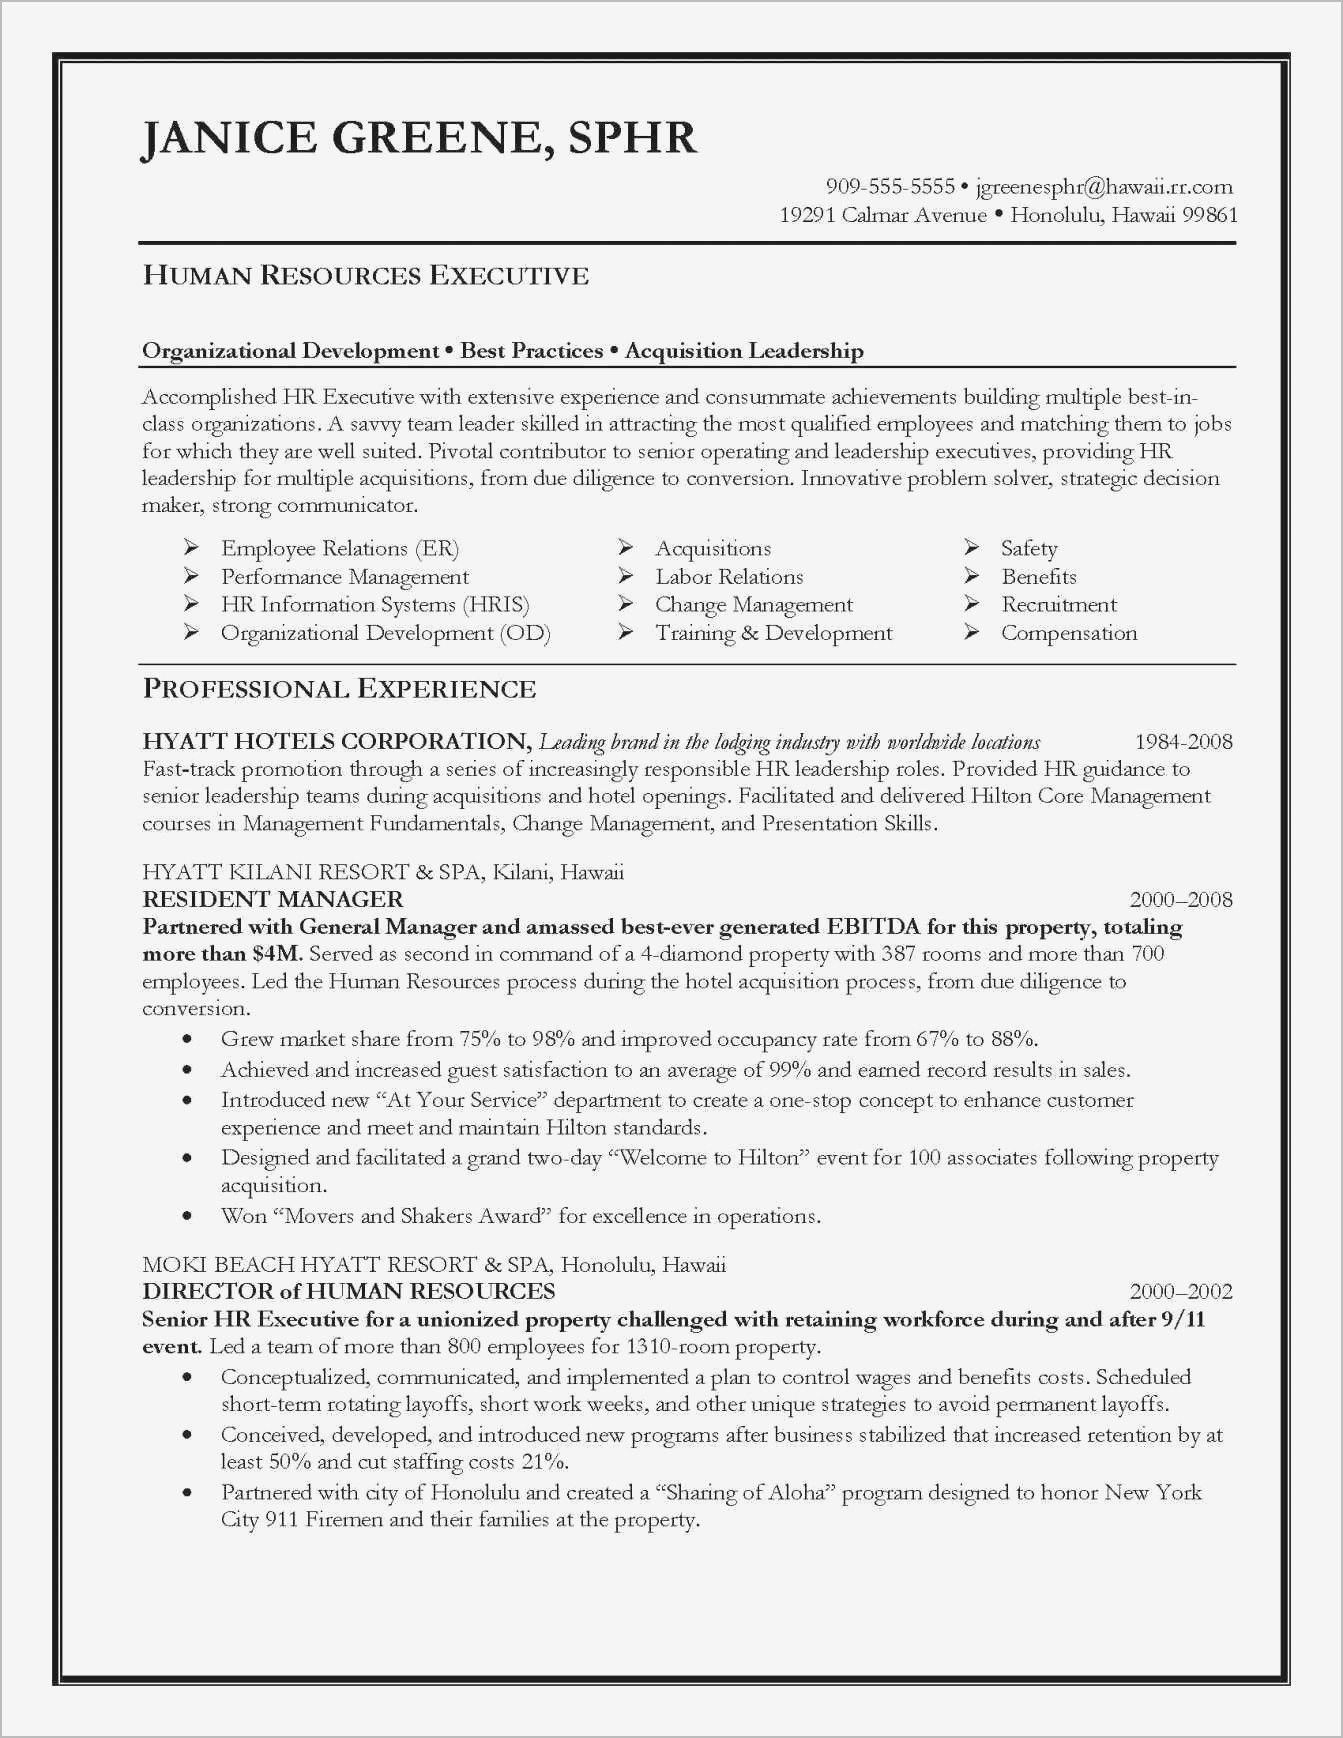 Easy Ways To Write Your Resume Summary Statement Human Resources Resume Resume Objective Examples Project Manager Resume